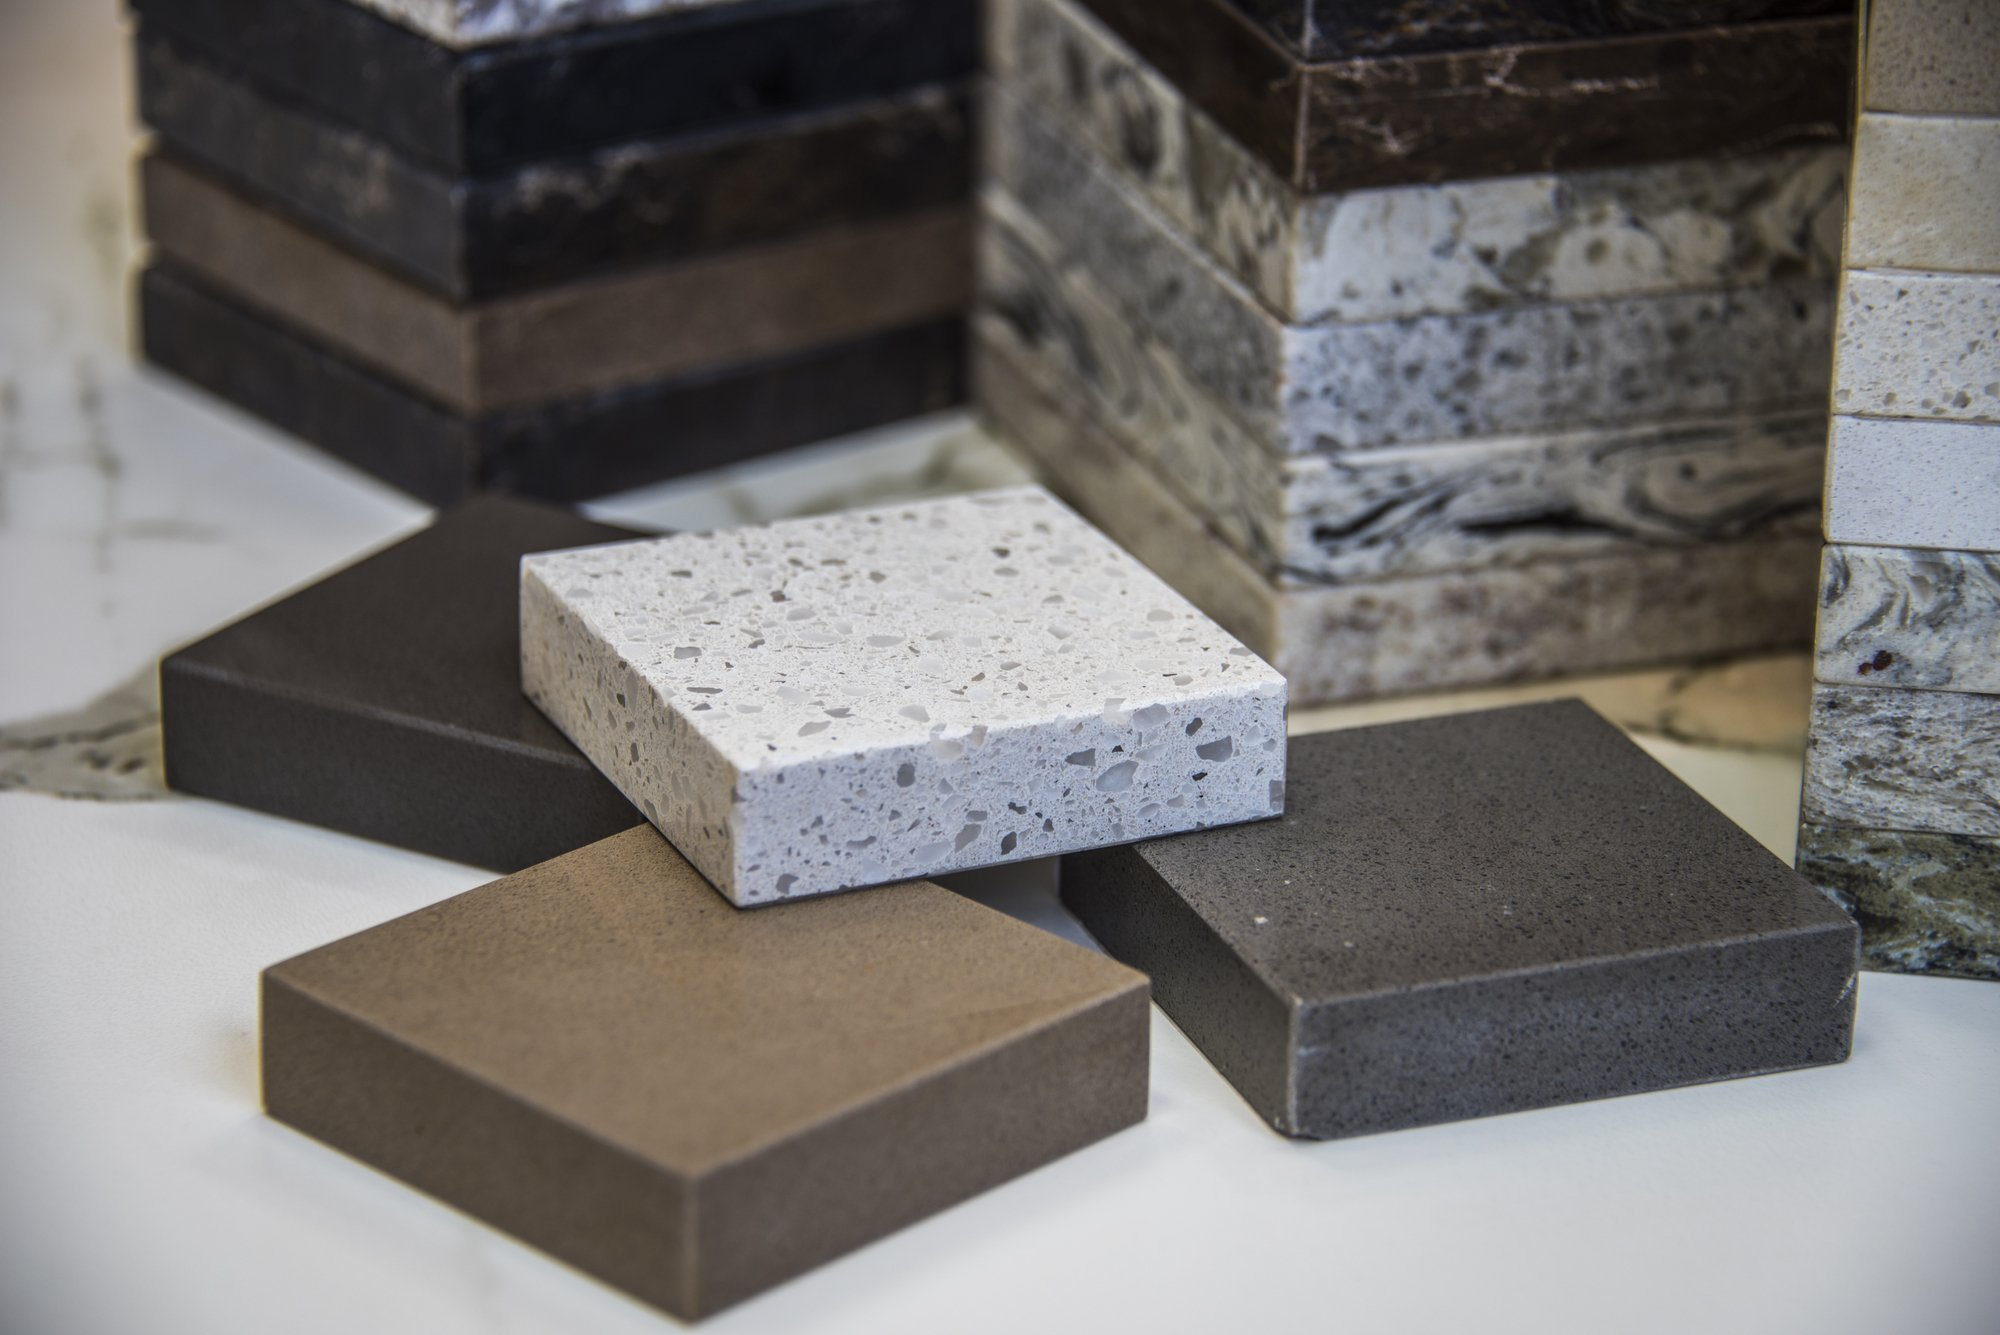 How to Care for Your Countertops